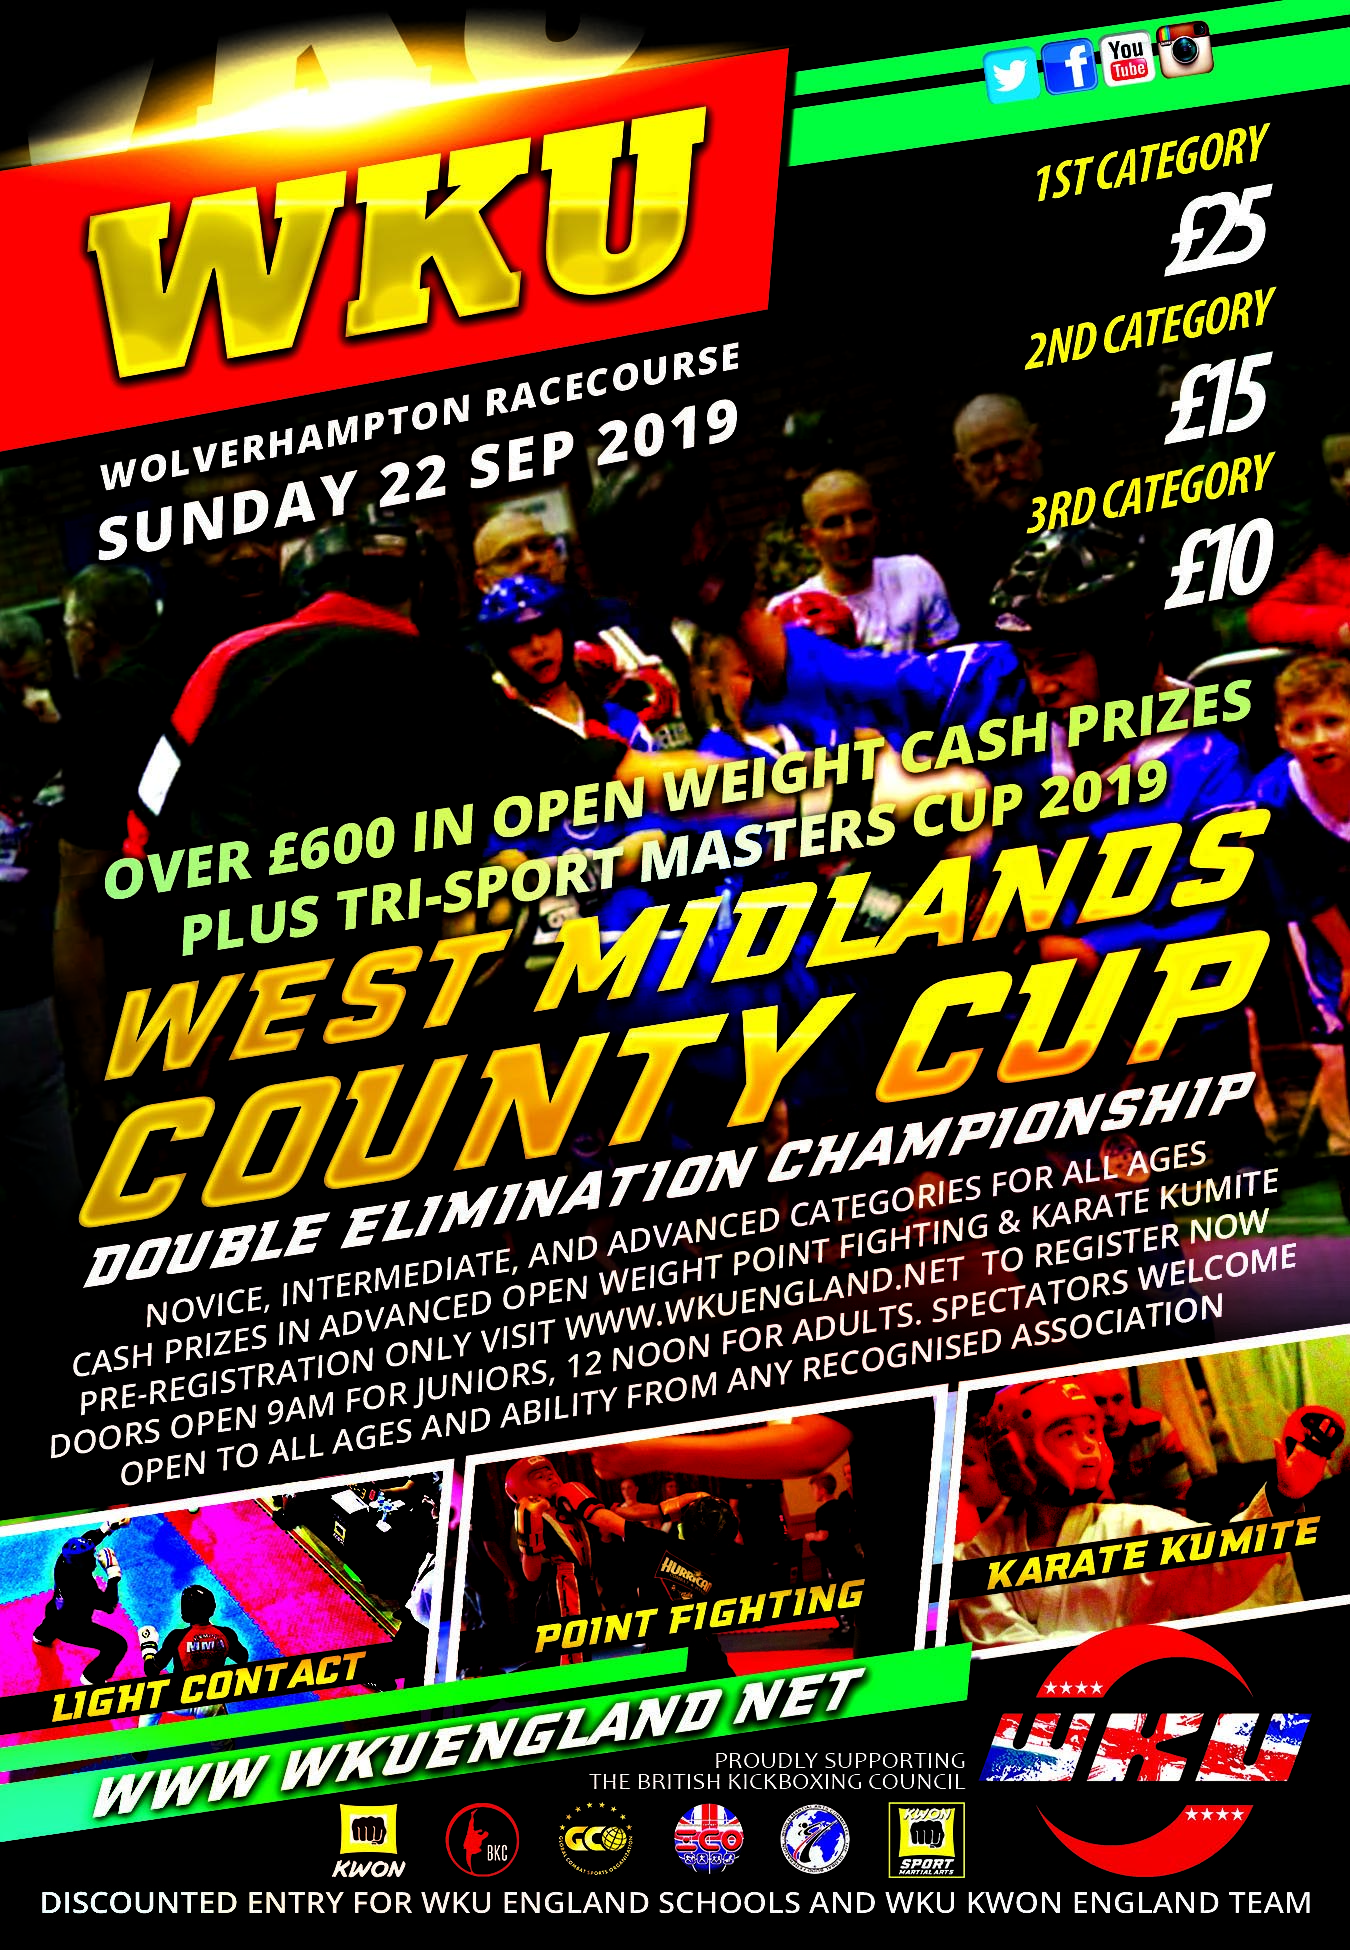 West Midlands County Cup 2019